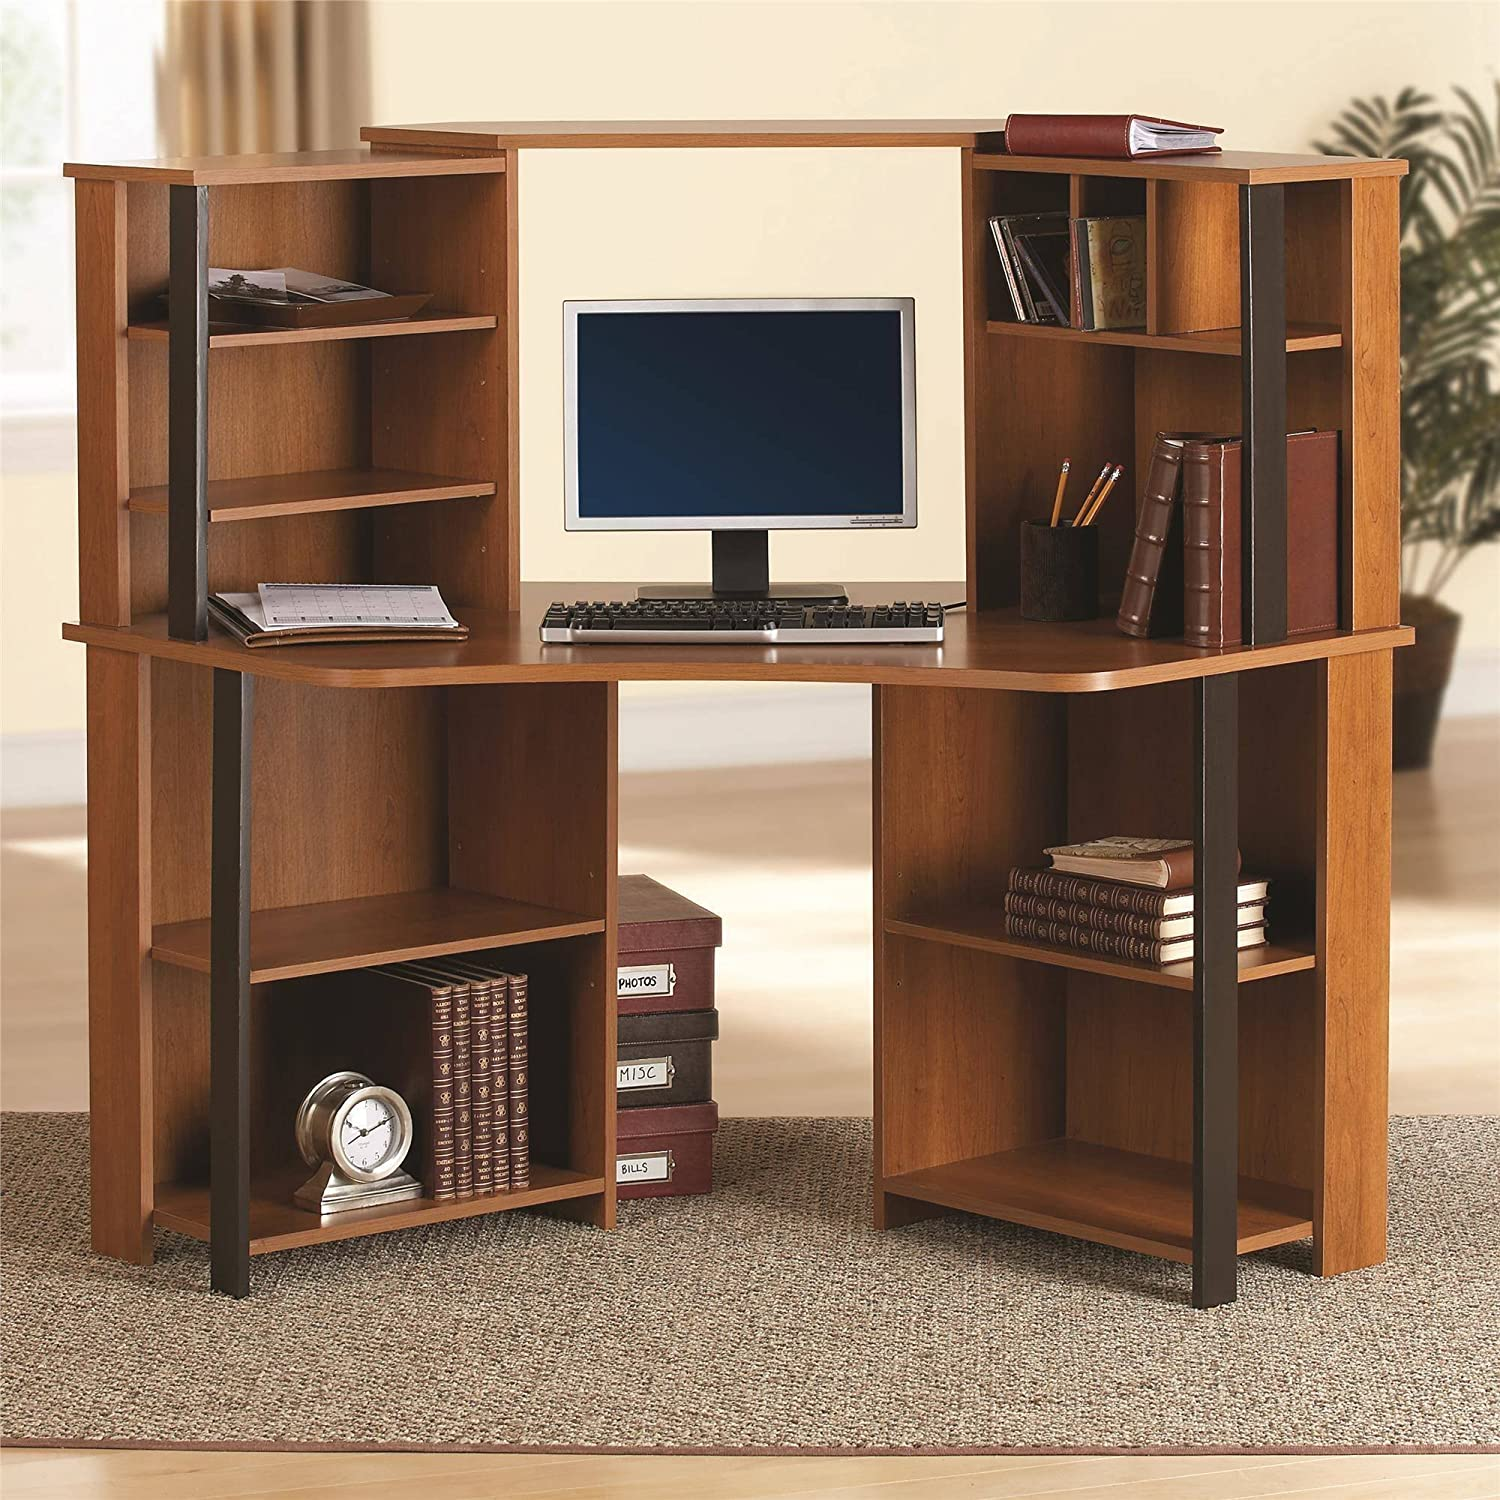 Amazon.com: Classy Wooden Corner Workstation, Stylish And Highly Functional  Home Office Furniture With Multiple Storage Decks Great For Organization  And ...